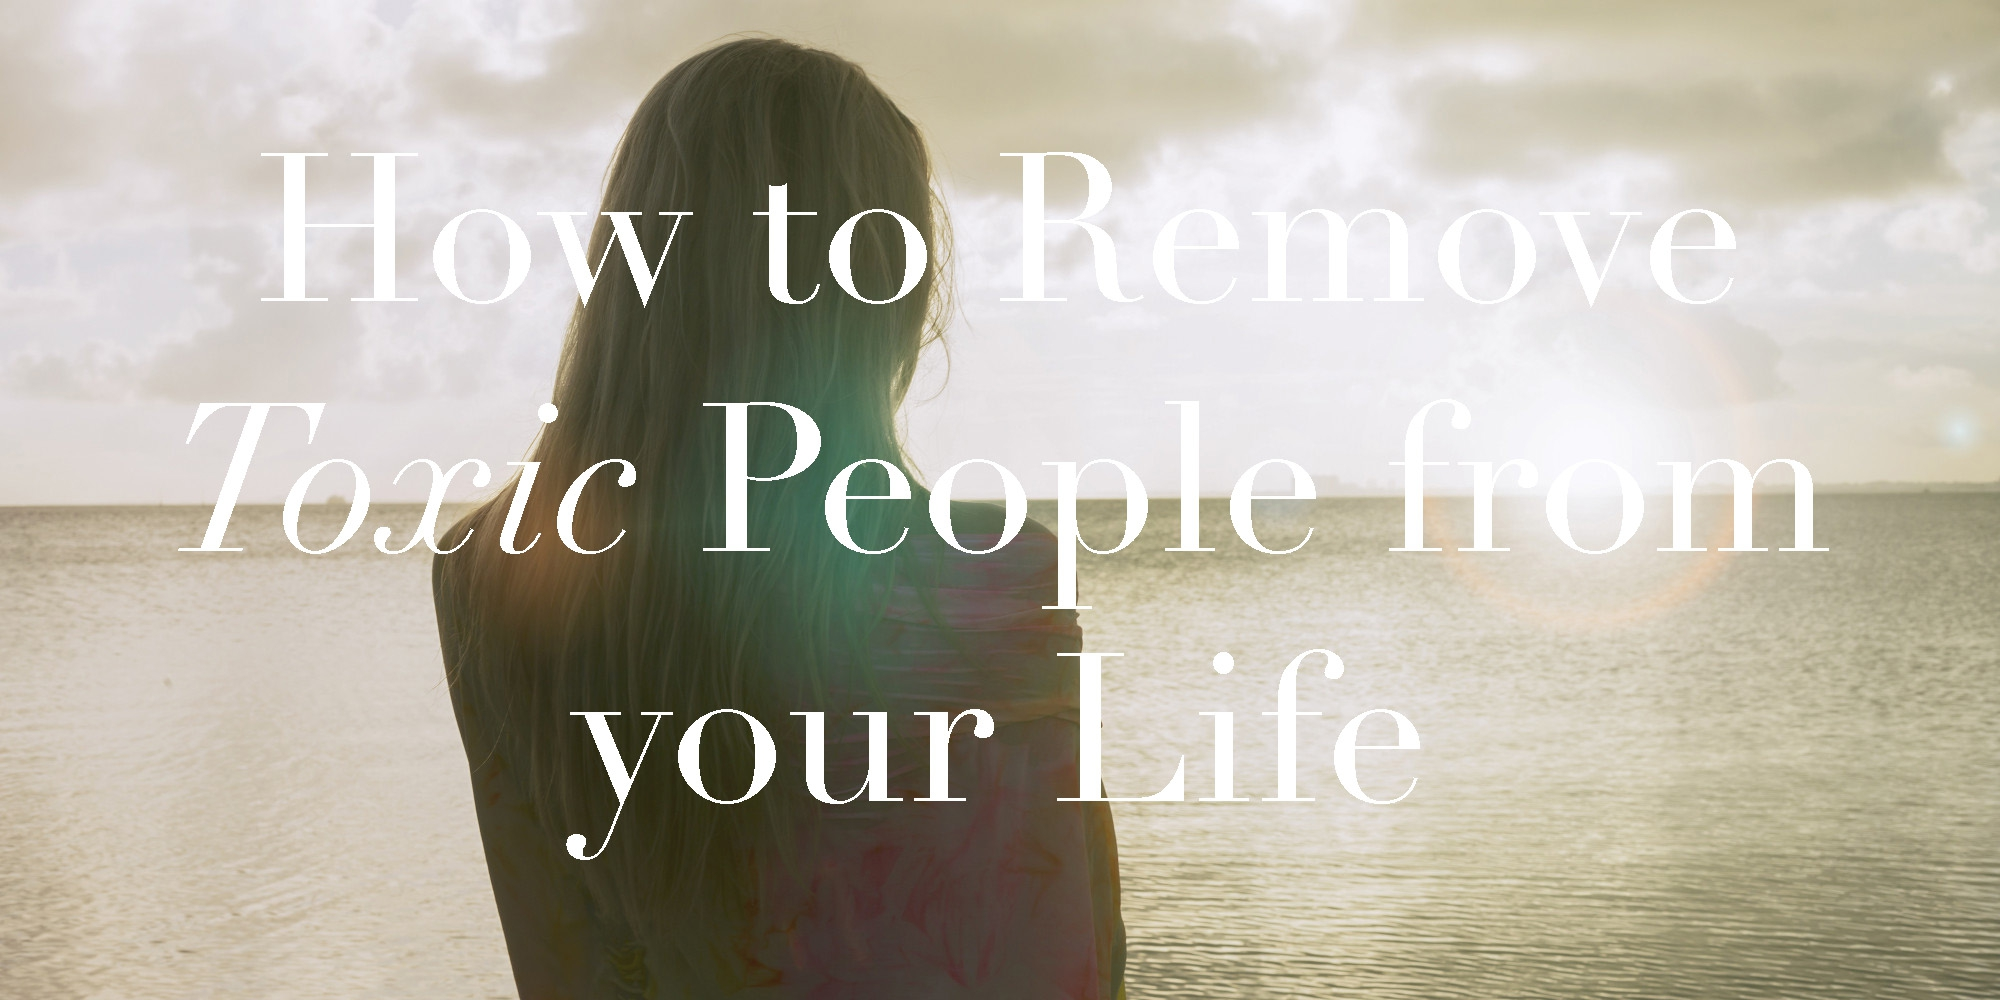 how-to-remove-toxic-people-from-your-life.jpg